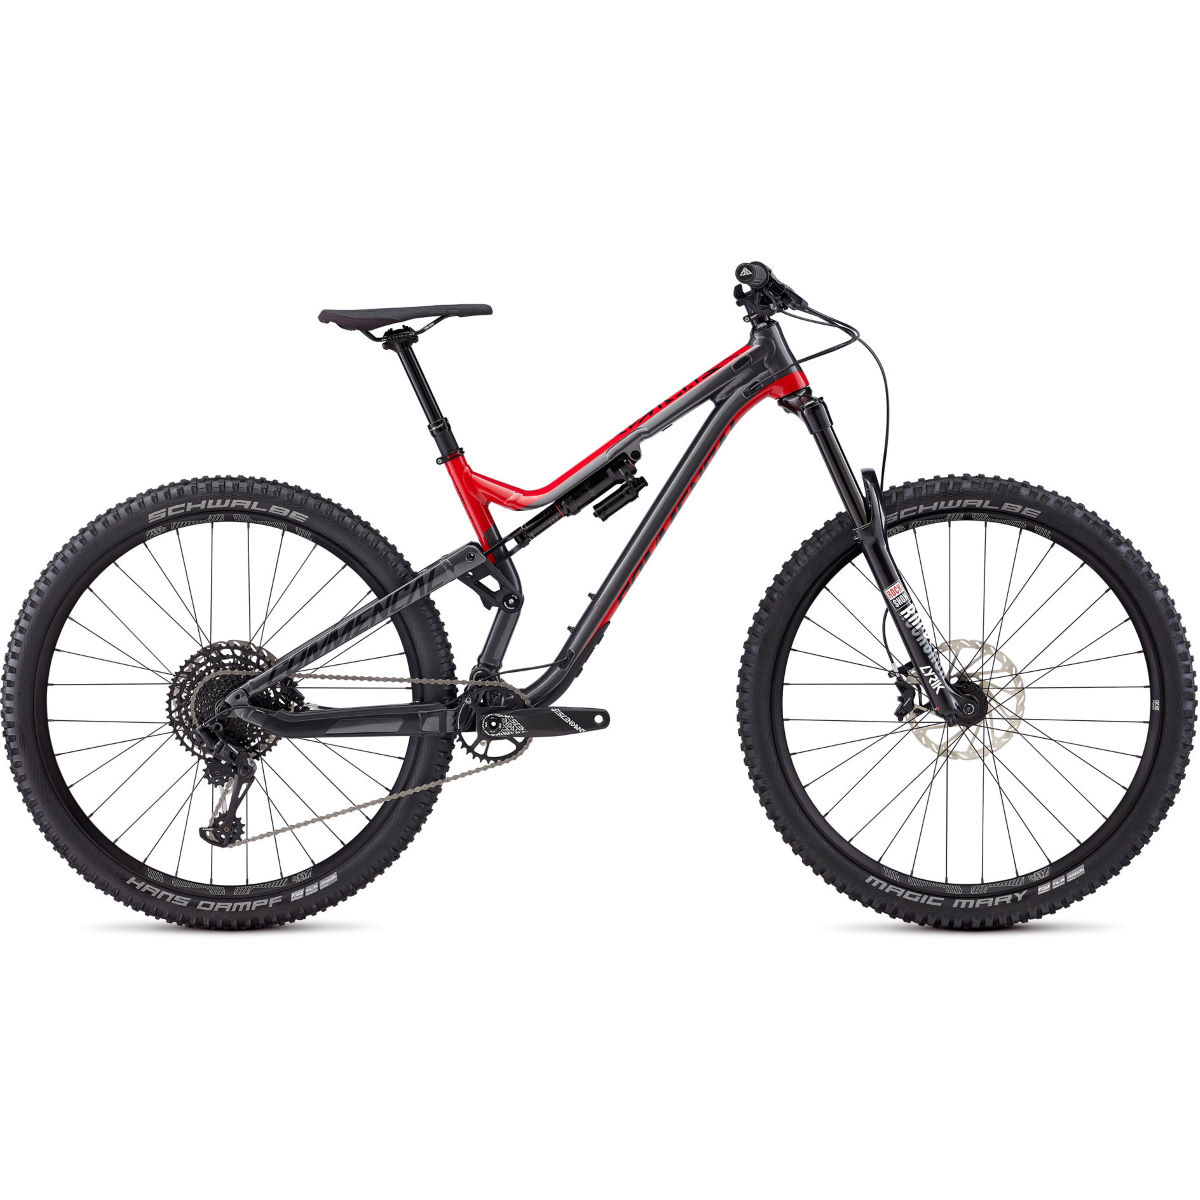 ComprarCommencal Meta AM 29 Race Mountain Bike - Bicicletas de MTB de doble suspensión